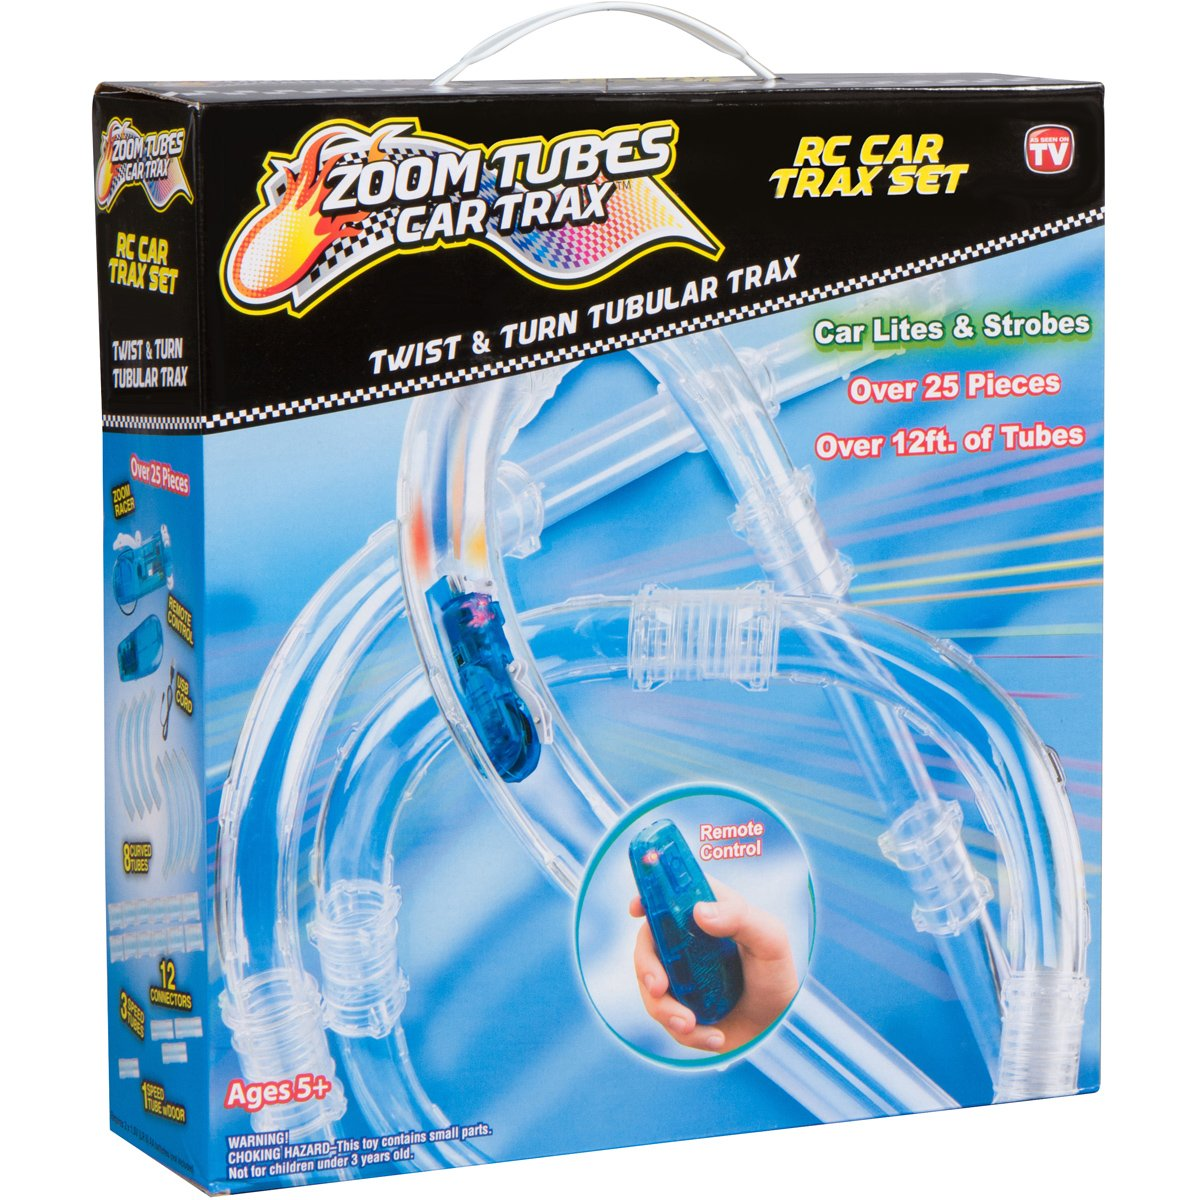 Zoom Tubes Car Trax 25 Pc Rc Set With 1 Blue Wiring Diagram Ladder Racer And Over 12ft Of As Seen On Tv Toys Games